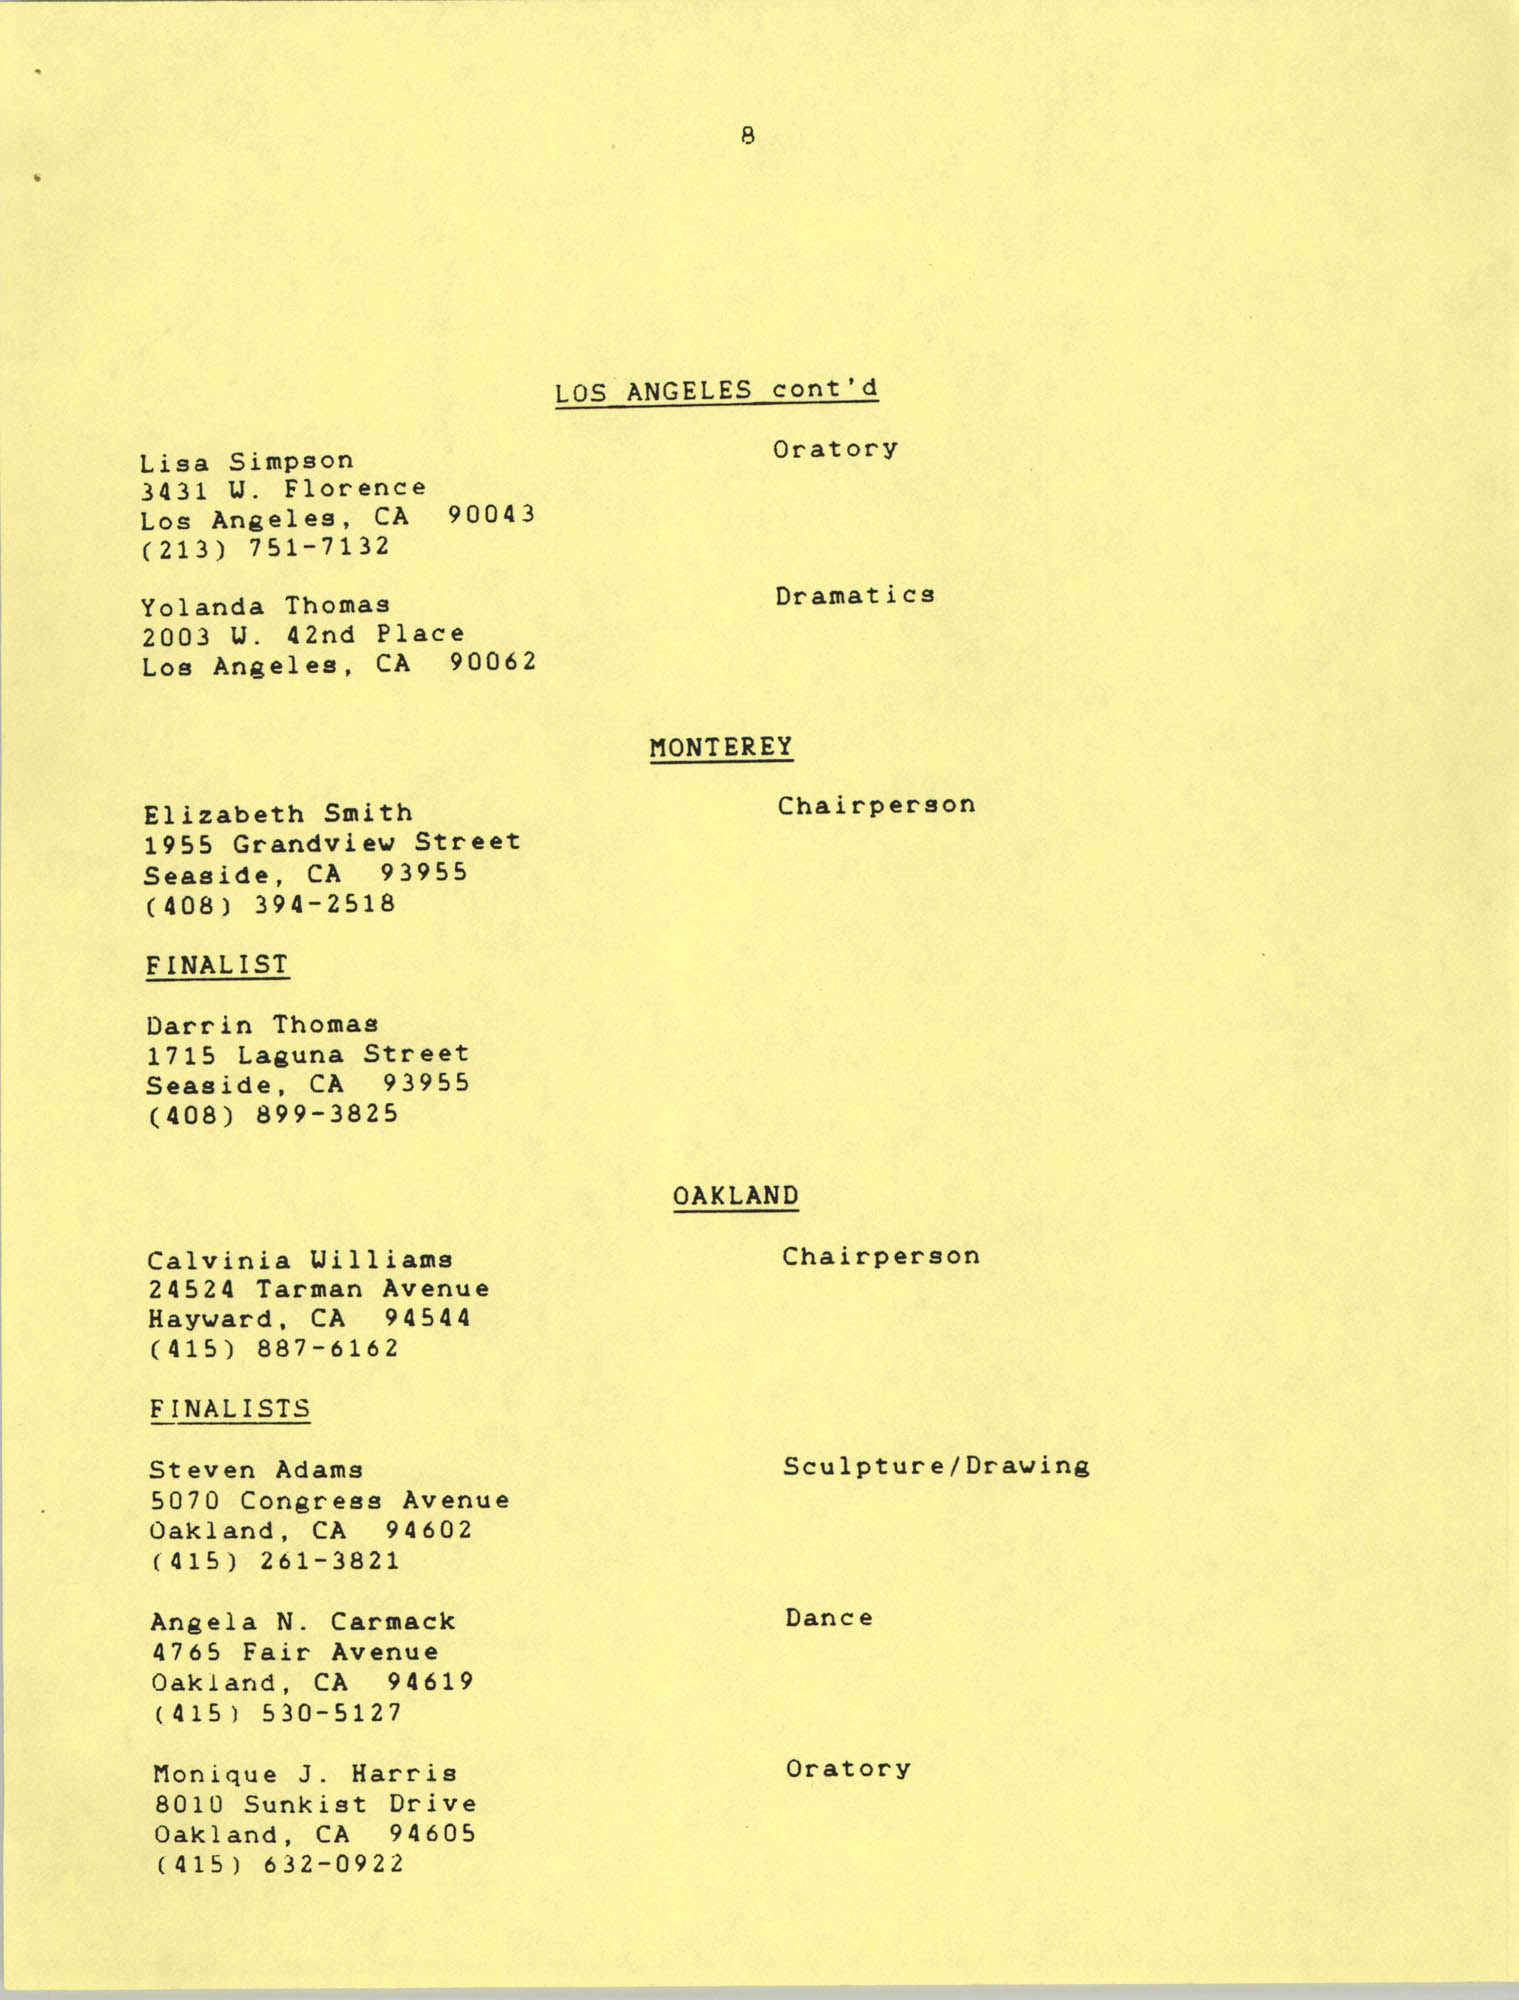 1987 Act-So Contestants, NAACP West Coast Region, Page 8